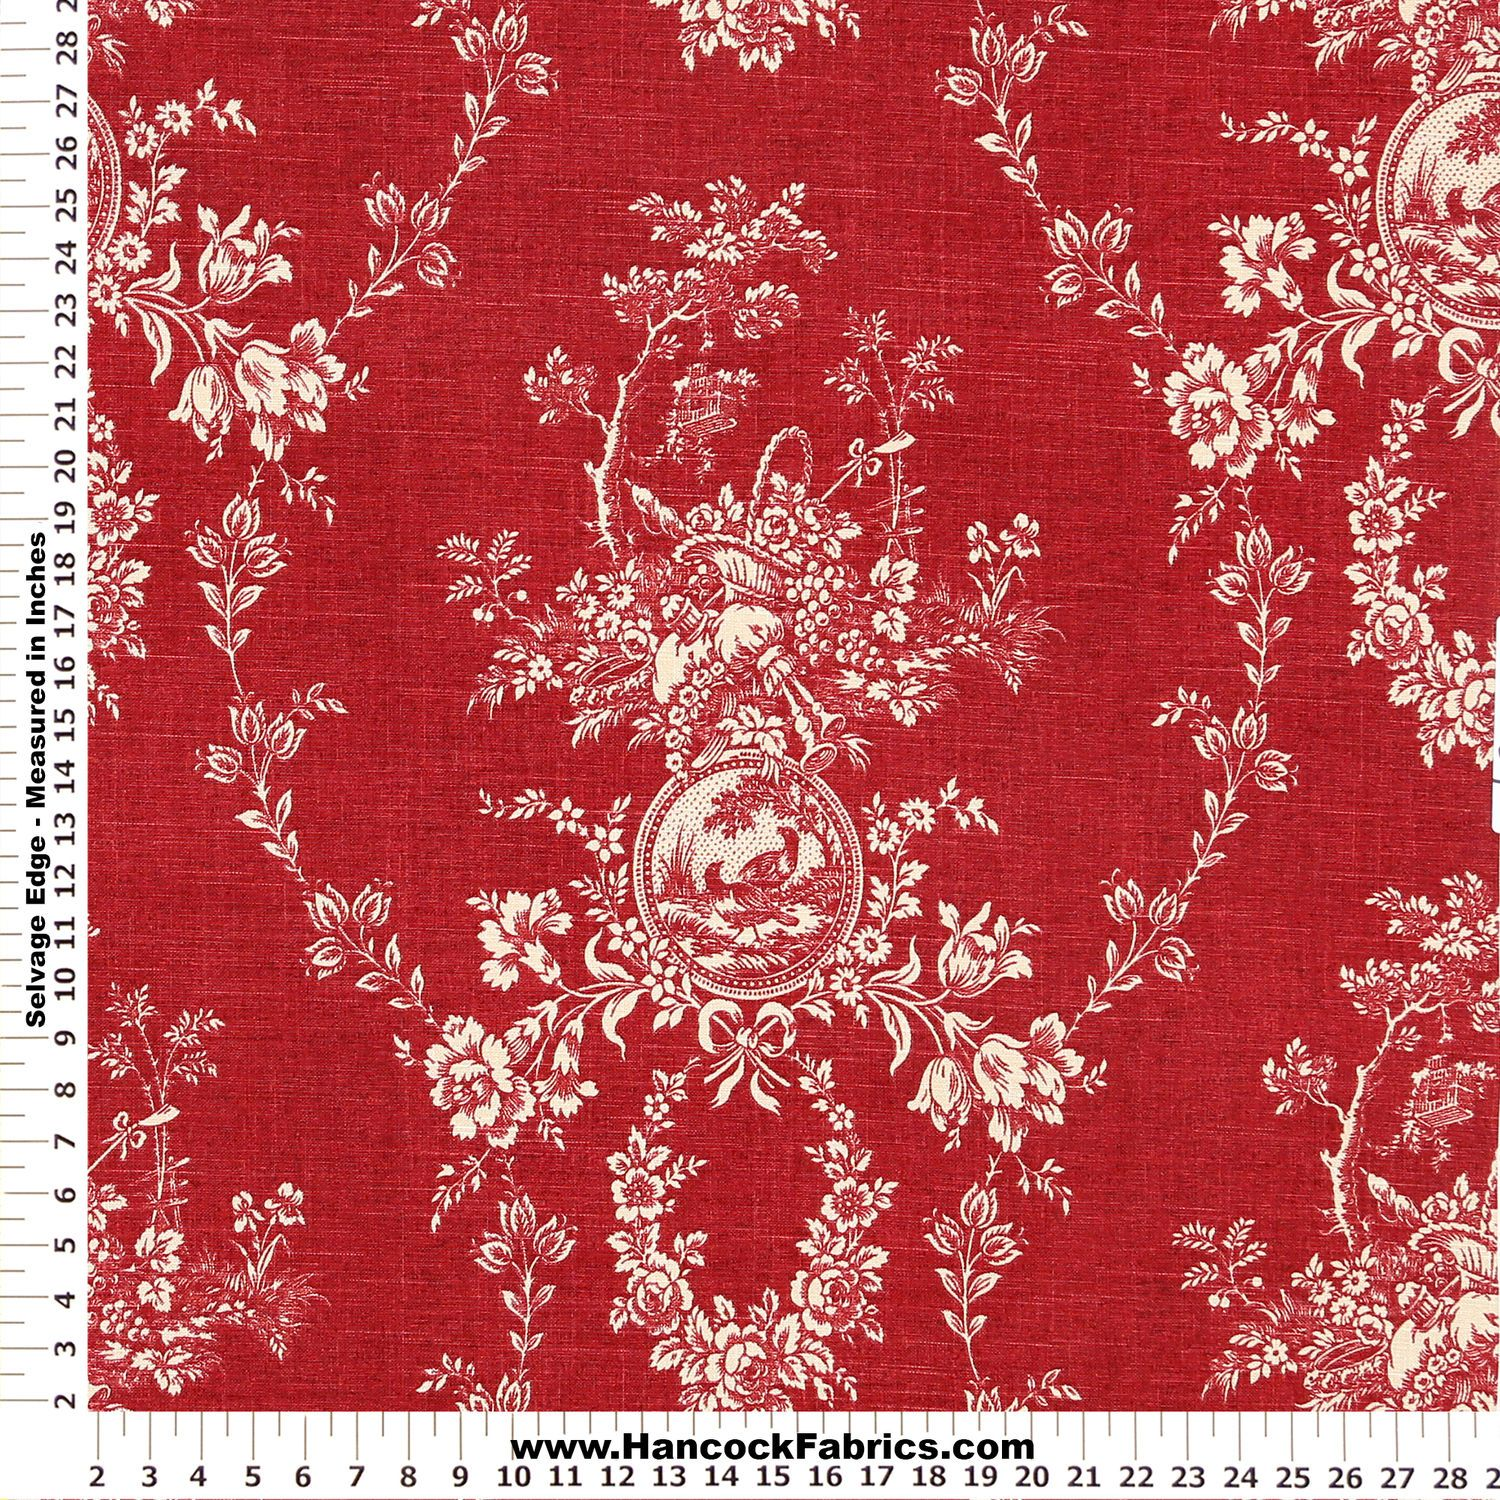 Waverly Red Toile Fabric Google Search With Images French Country Kitchens Waverly